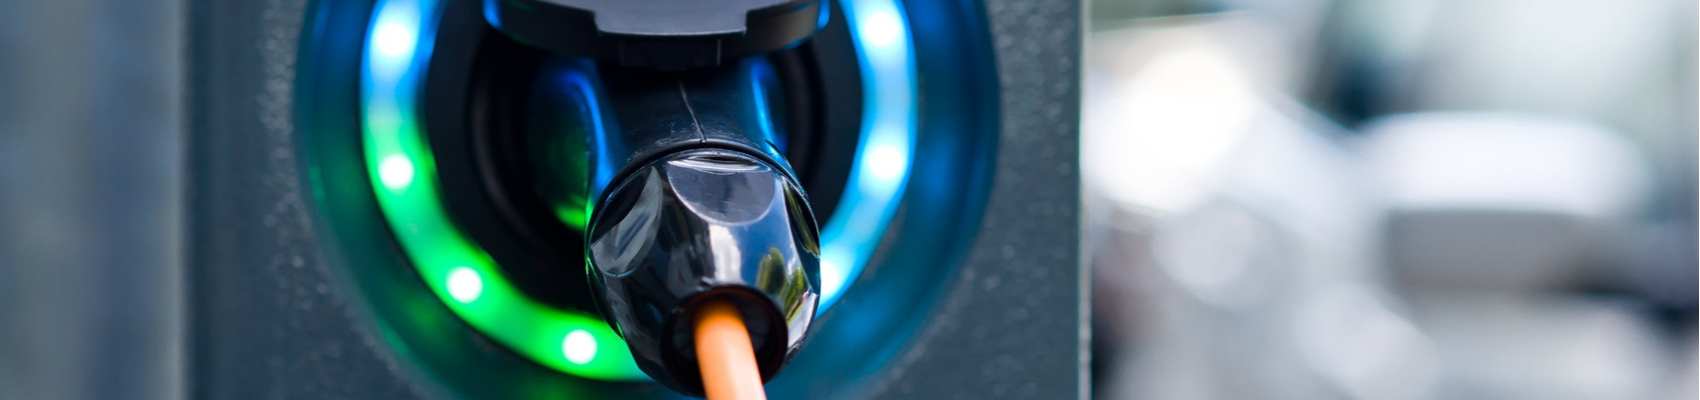 Save Money with Electric Car Chargers in Stafford